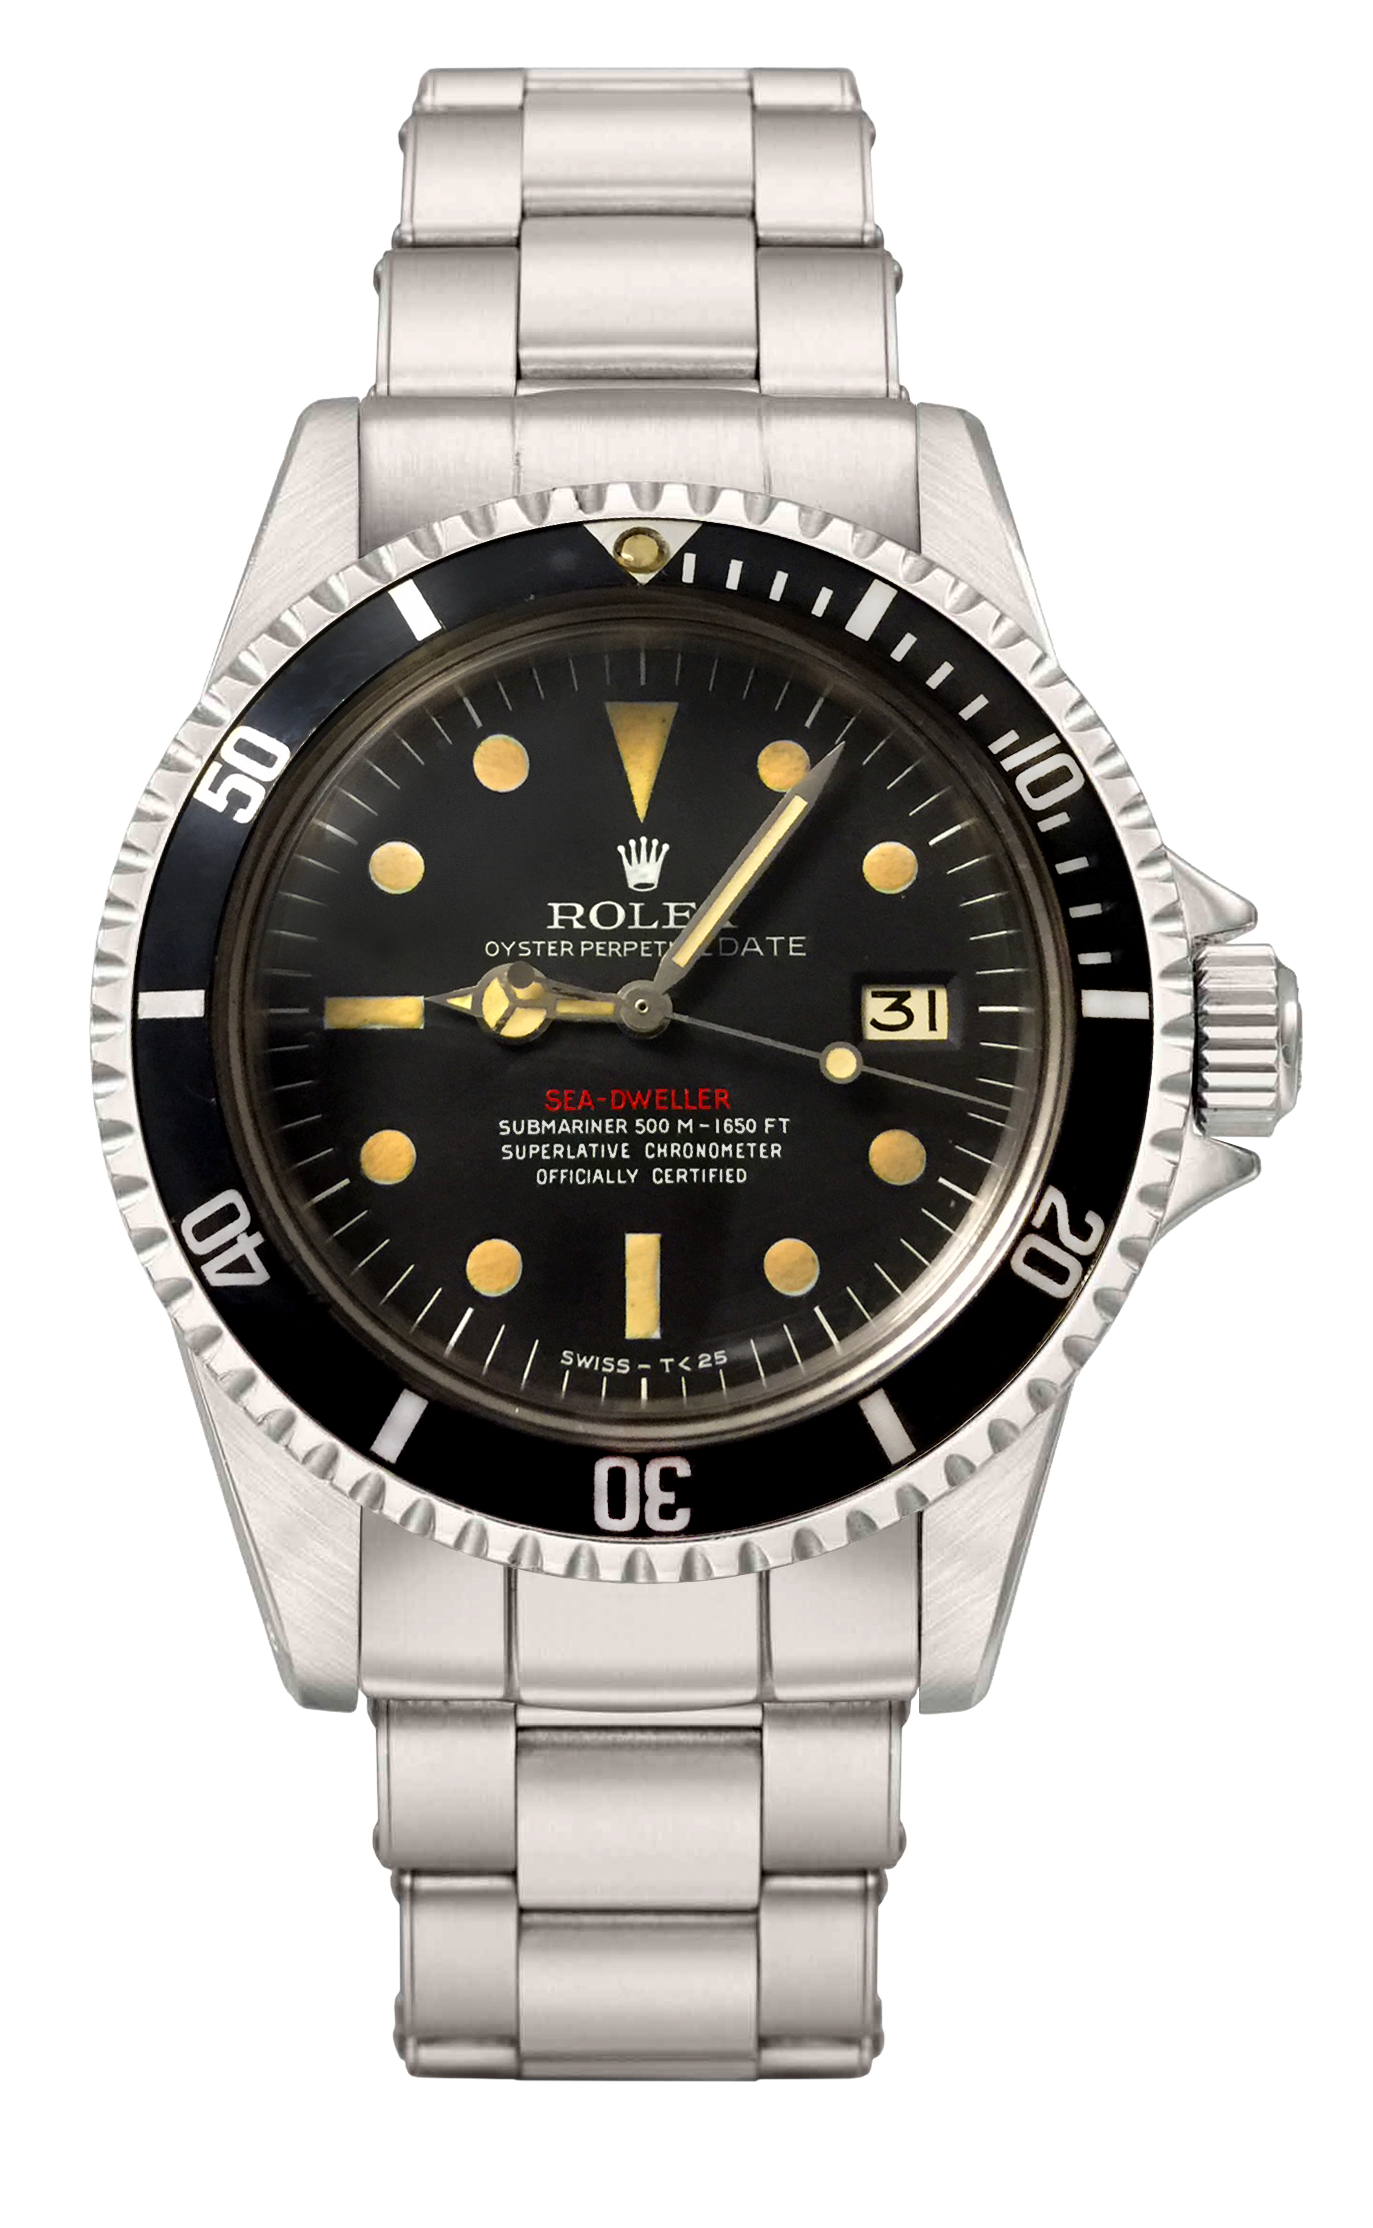 Single-Red Sea-Dweller Reference Points: Understanding The Rolex Sea-Dweller Reference Points: Understanding The Rolex Sea-Dweller single red